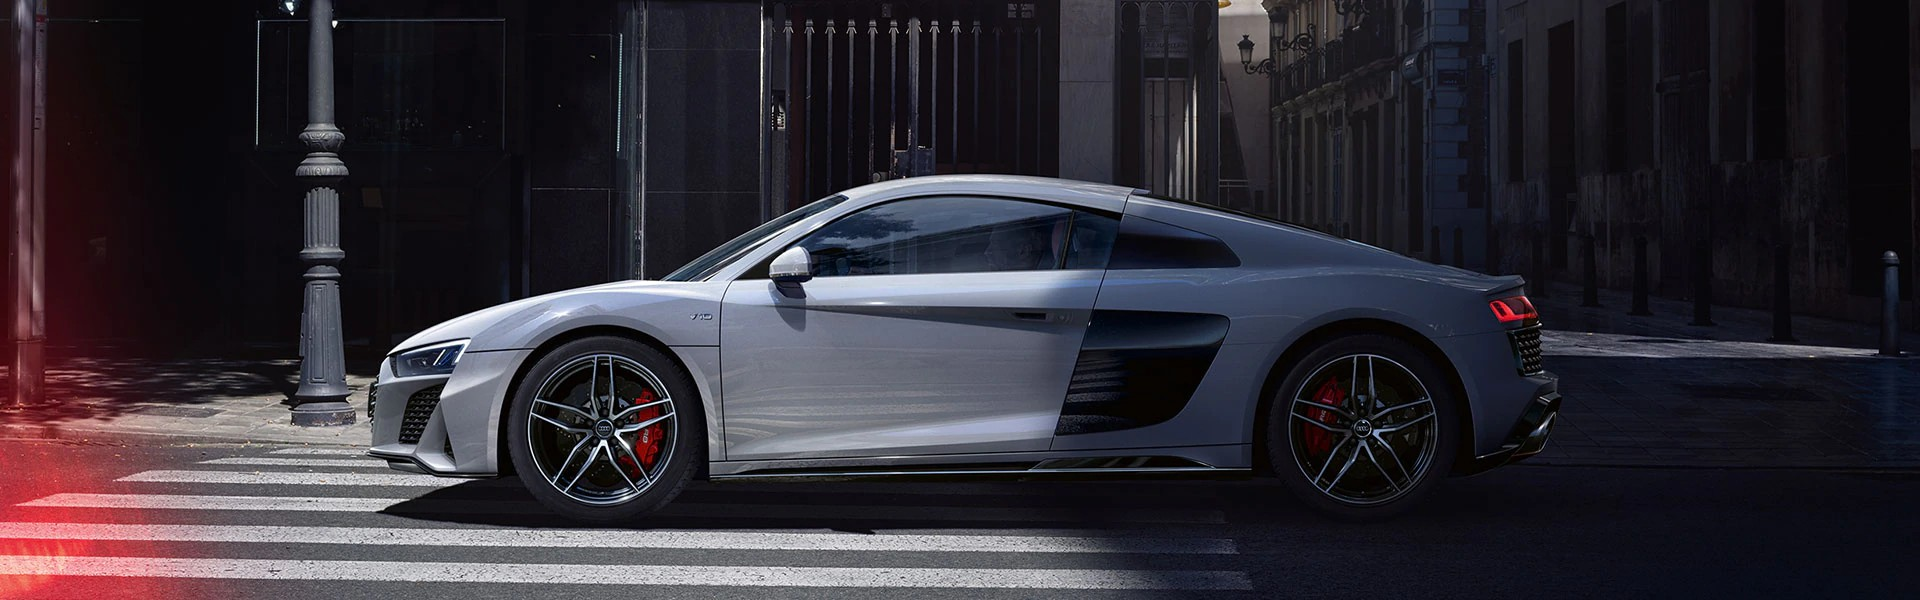 R8 Coupé V10 Quattro Land